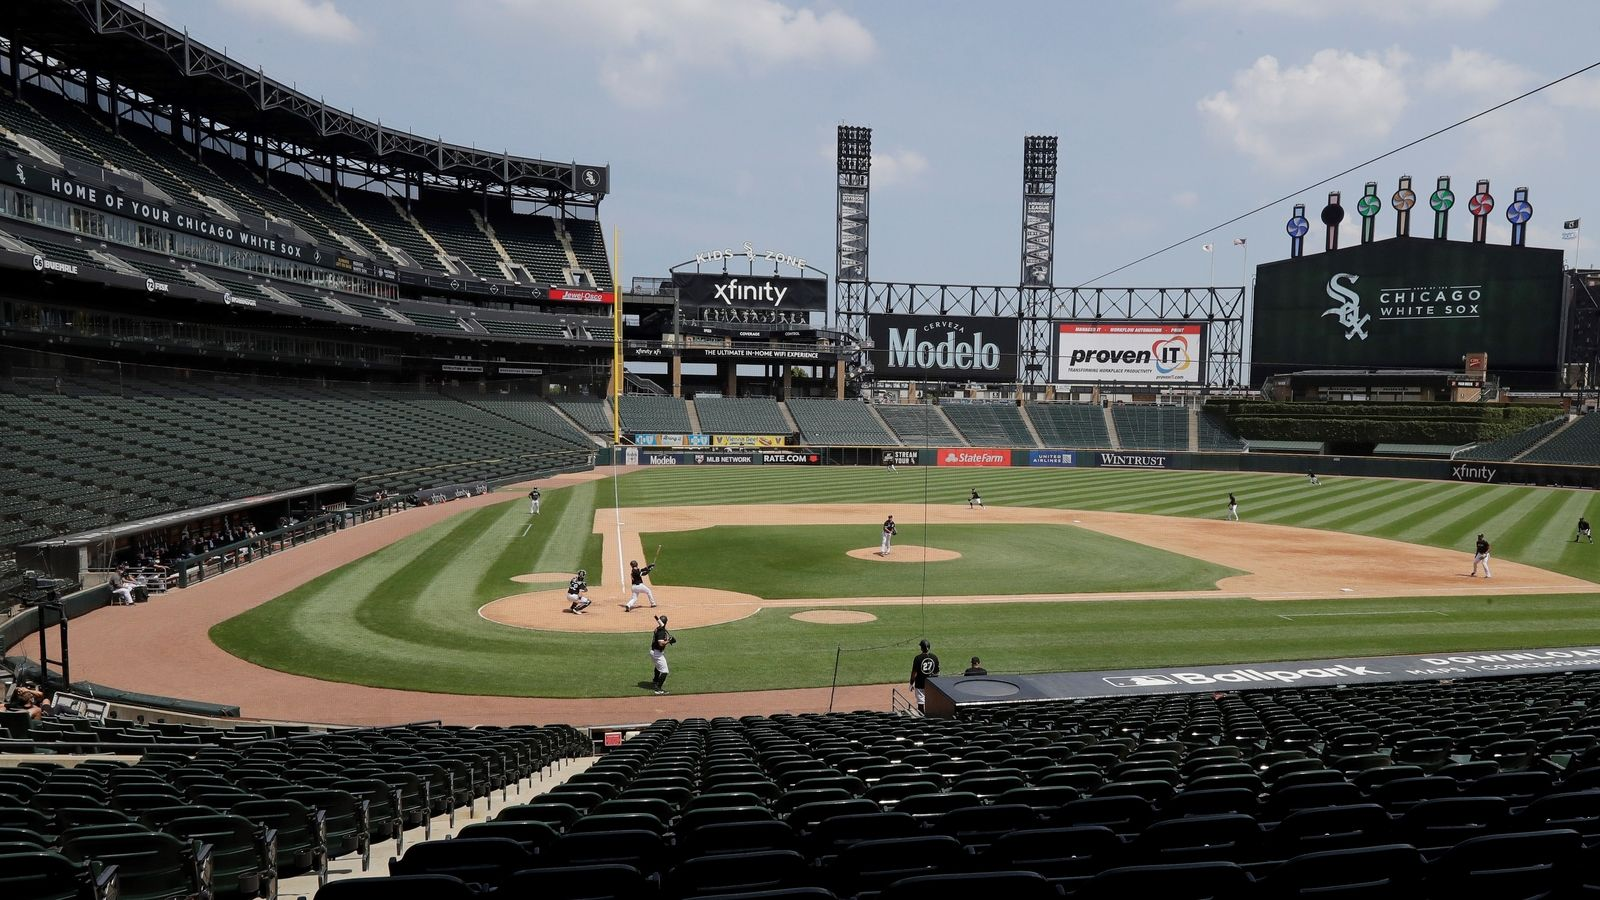 Chicago White Sox giving away free tickets at pop-up COVID vaccine event for series against Toronto Blue Jays